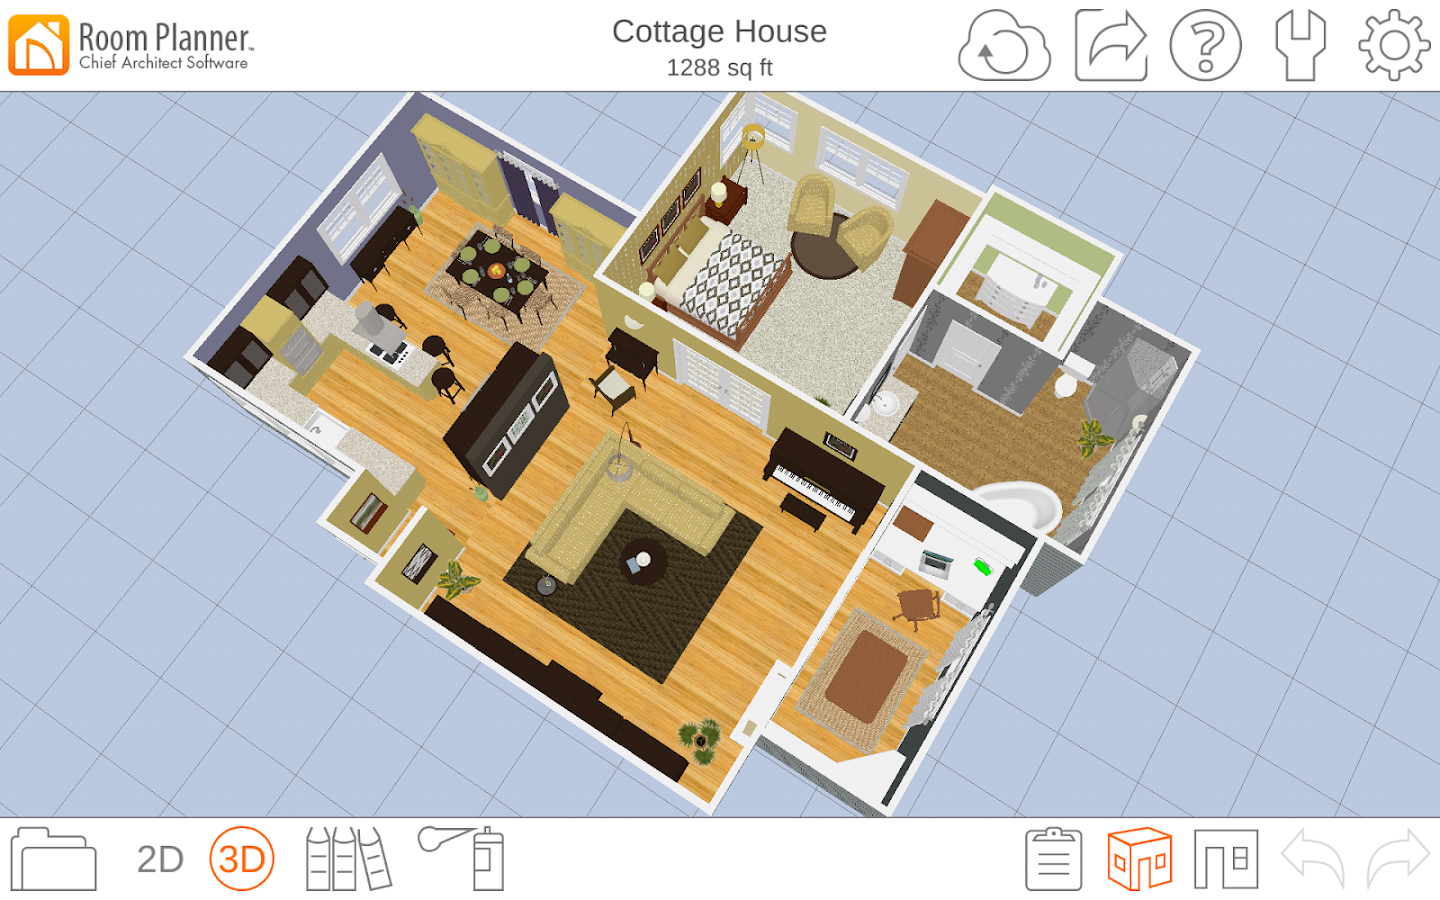 Room Planner Home Design- screenshot